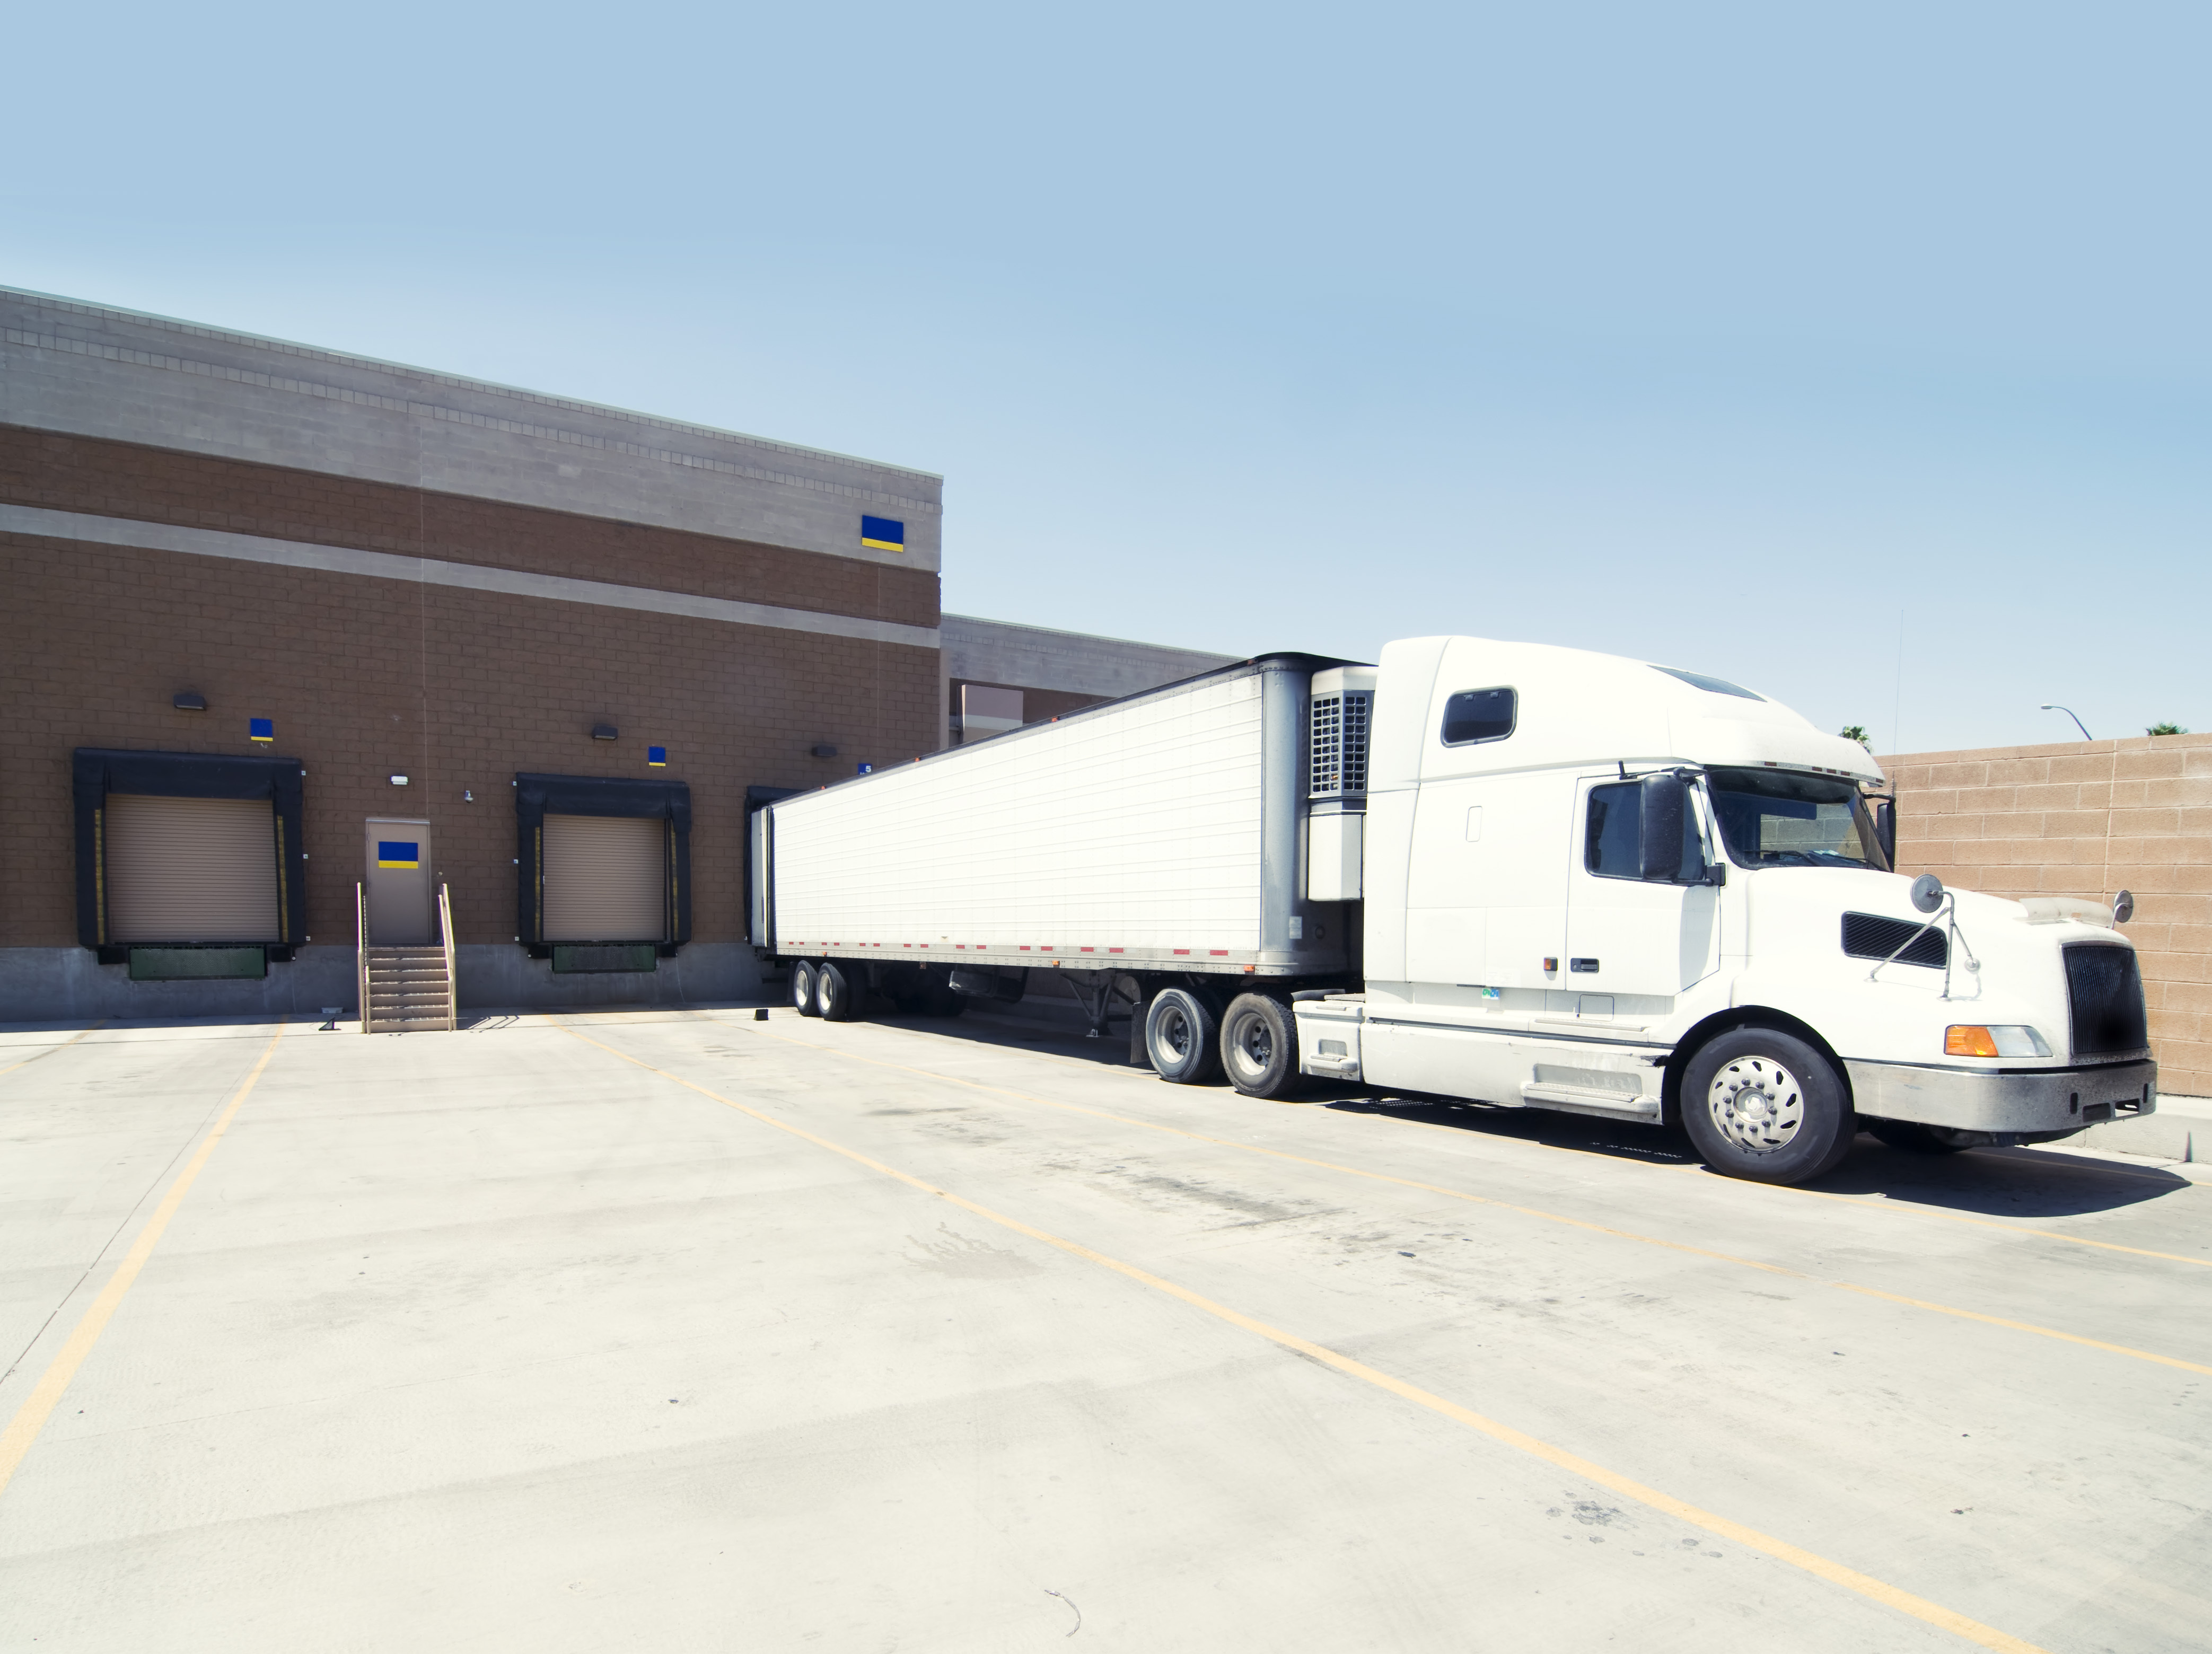 OOIDA: Driver training proposal OK, except for 'refresher' add-on